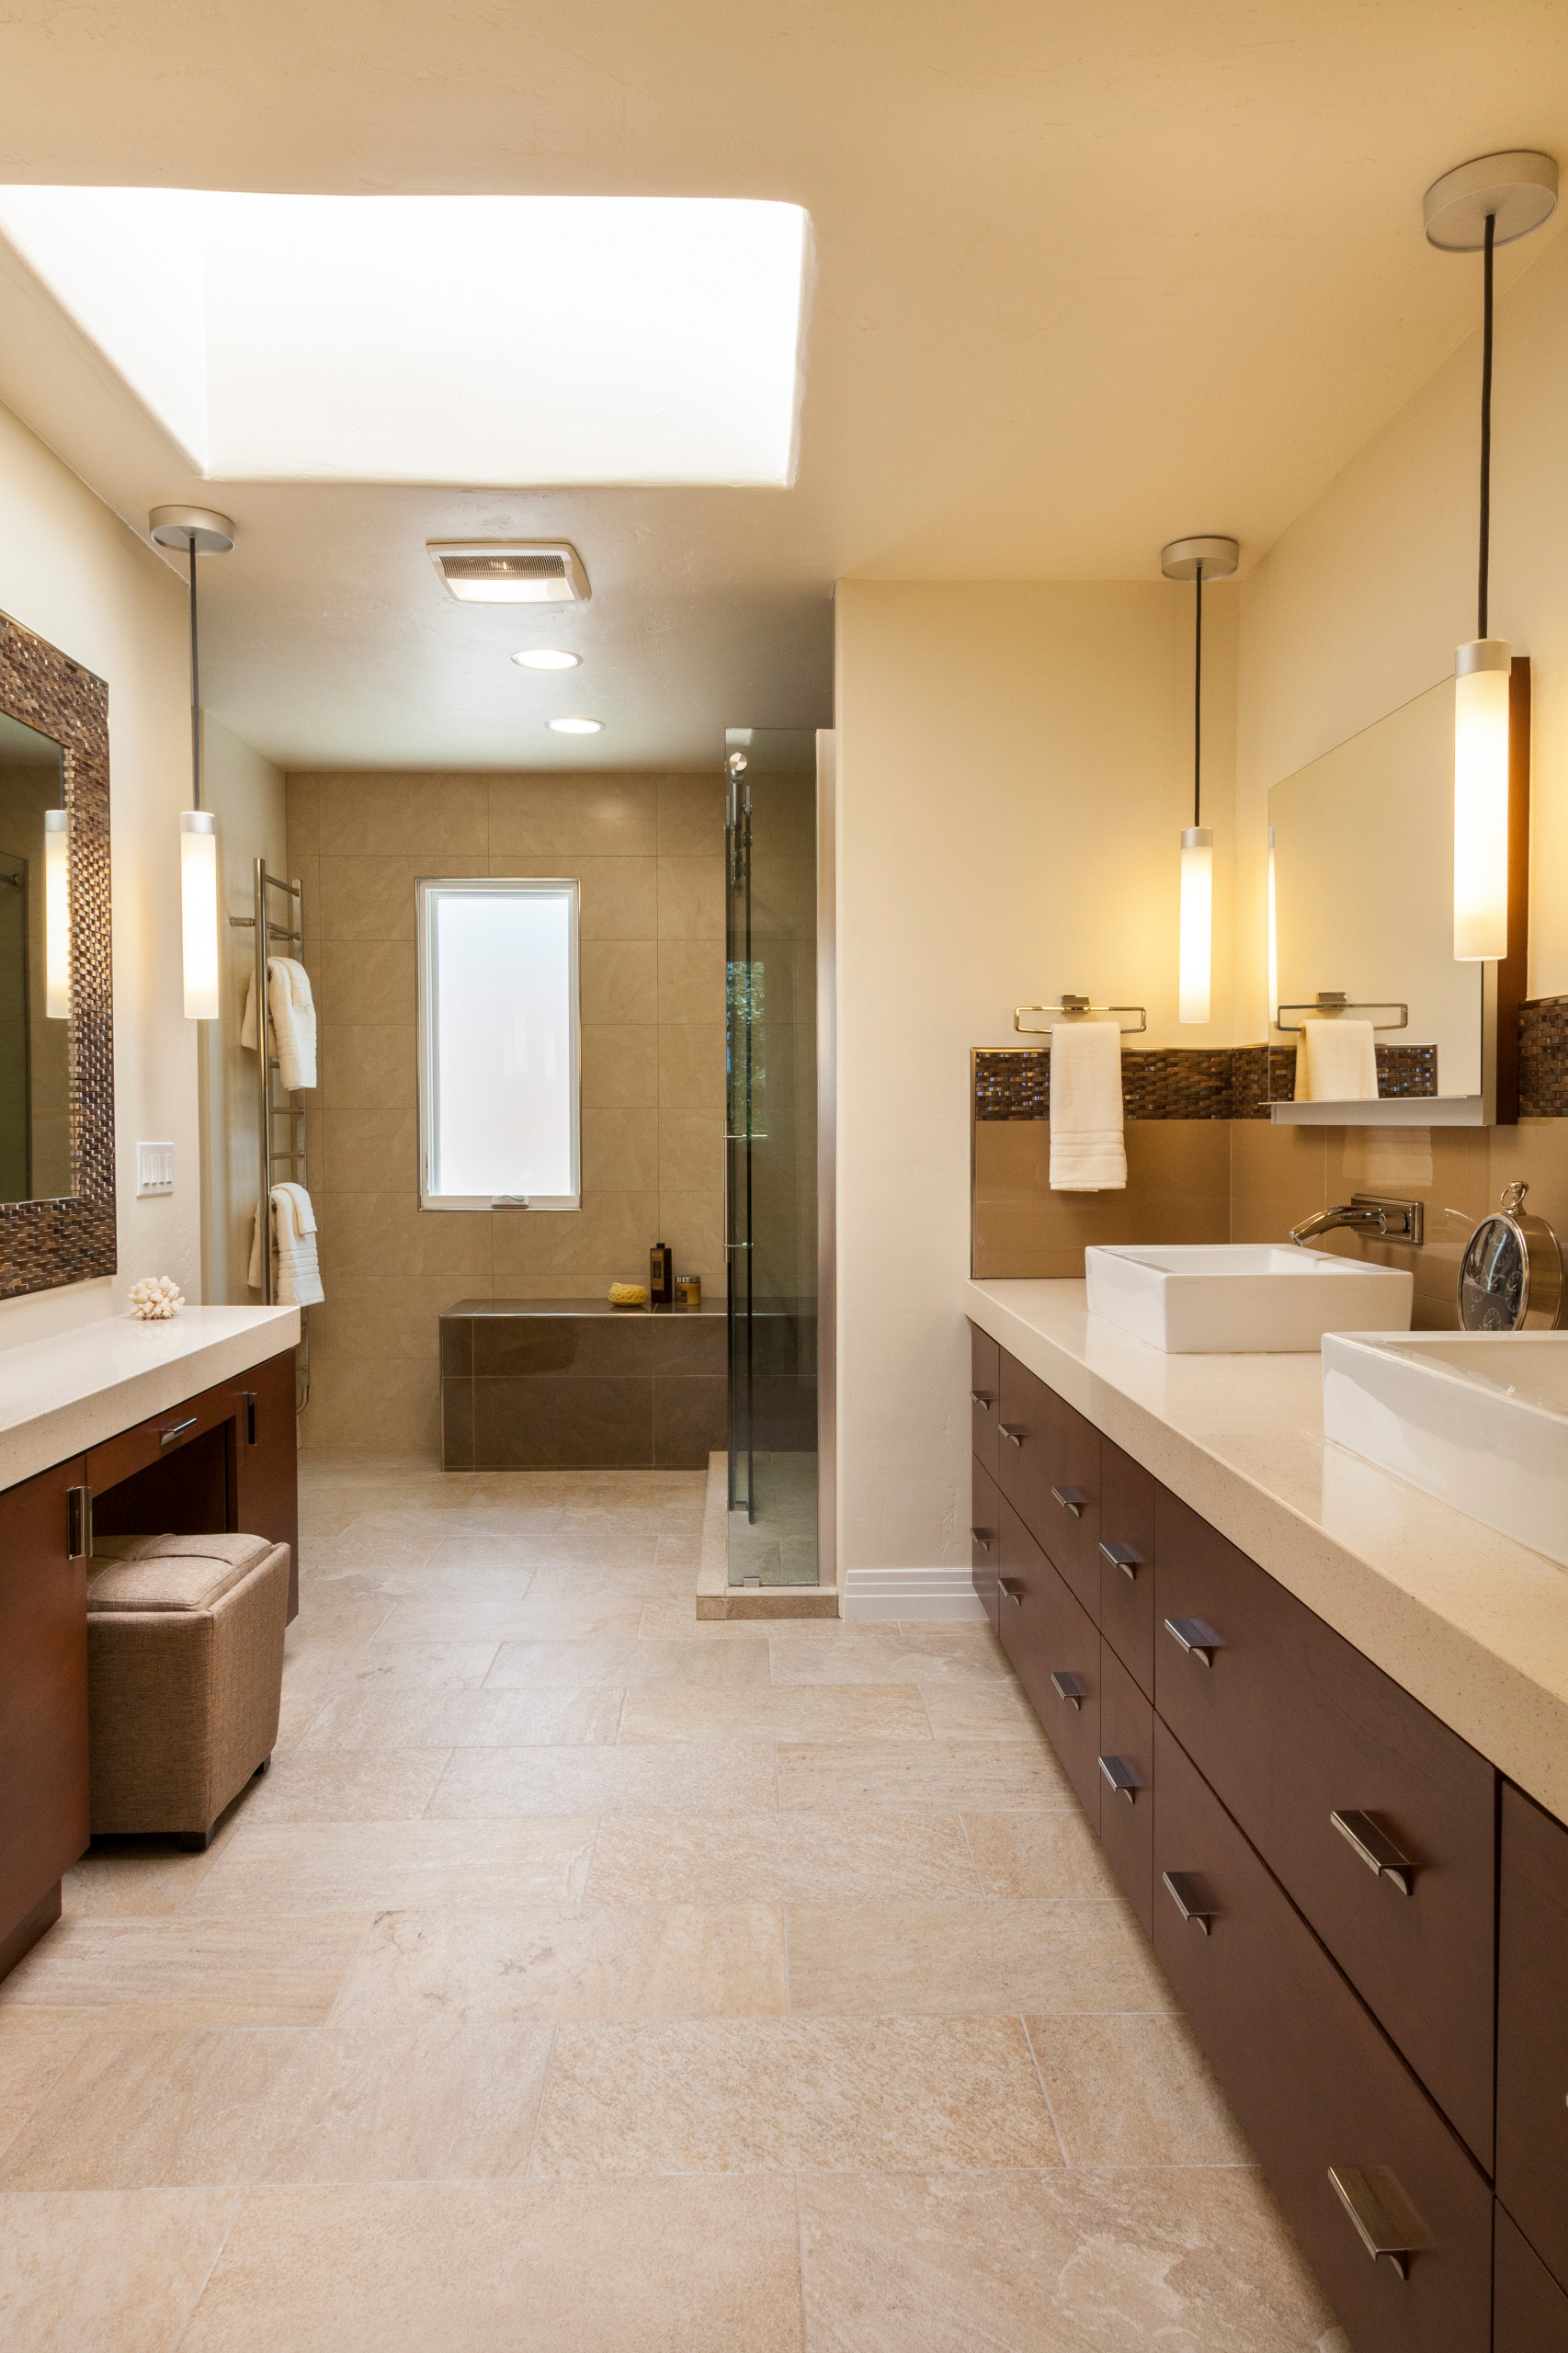 75 Beautiful Beige Tile Bathroom With Recycled Glass Countertops Pictures Ideas February 2021 Houzz